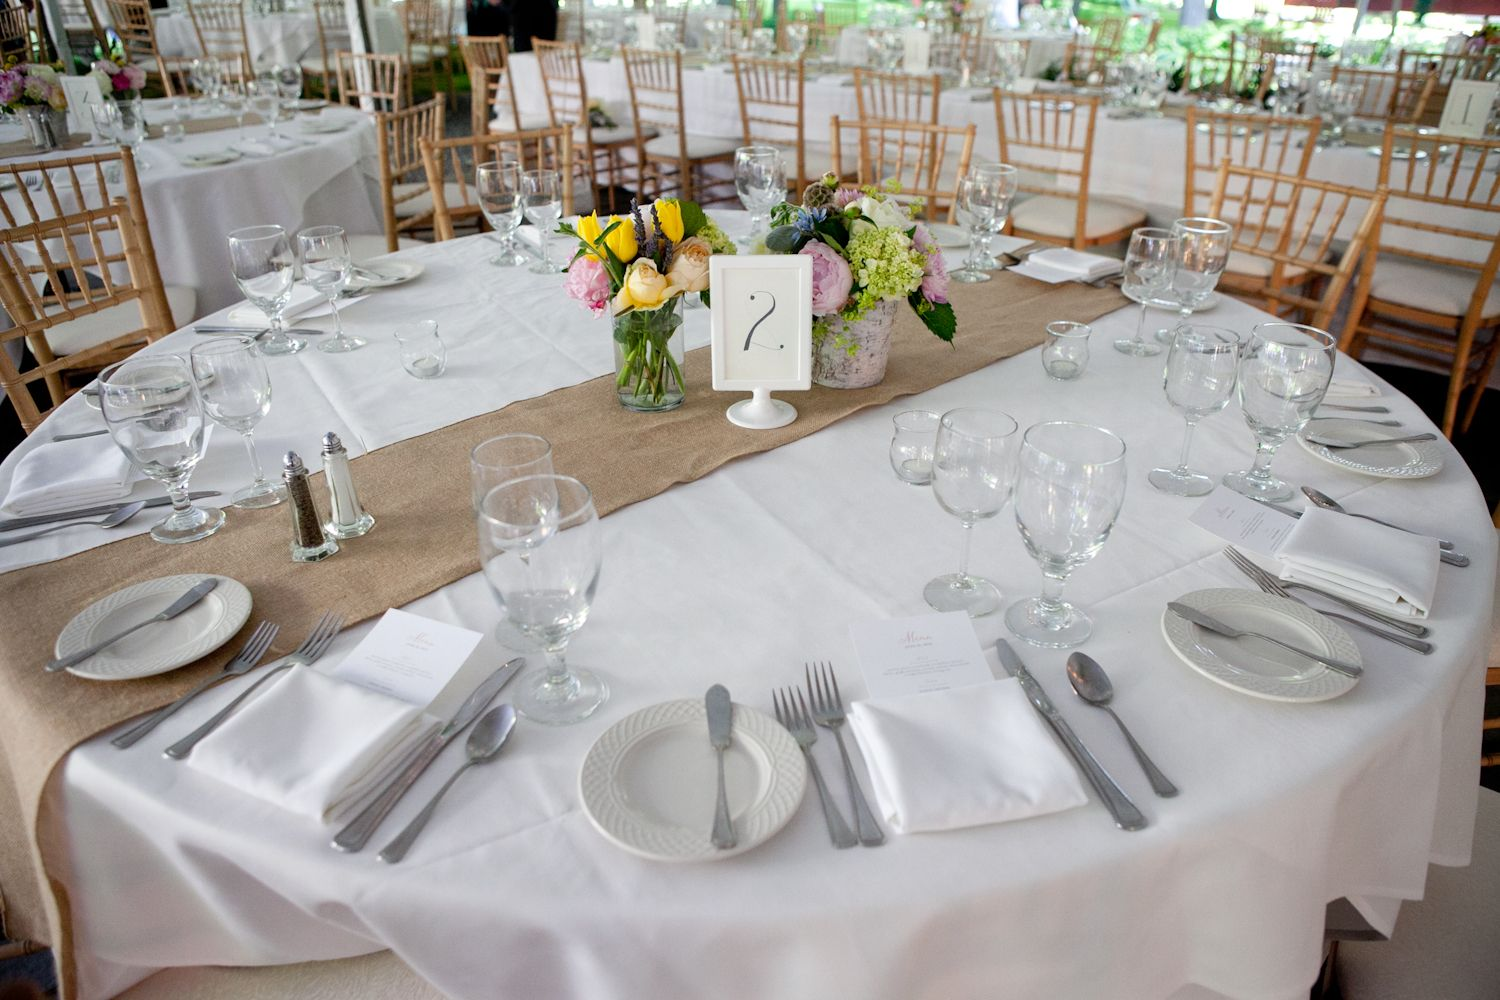 Rustic vermont wedding burlap runners rustic country weddings rustic favor table ideas weddings weddings real rustic country weddings junglespirit Image collections